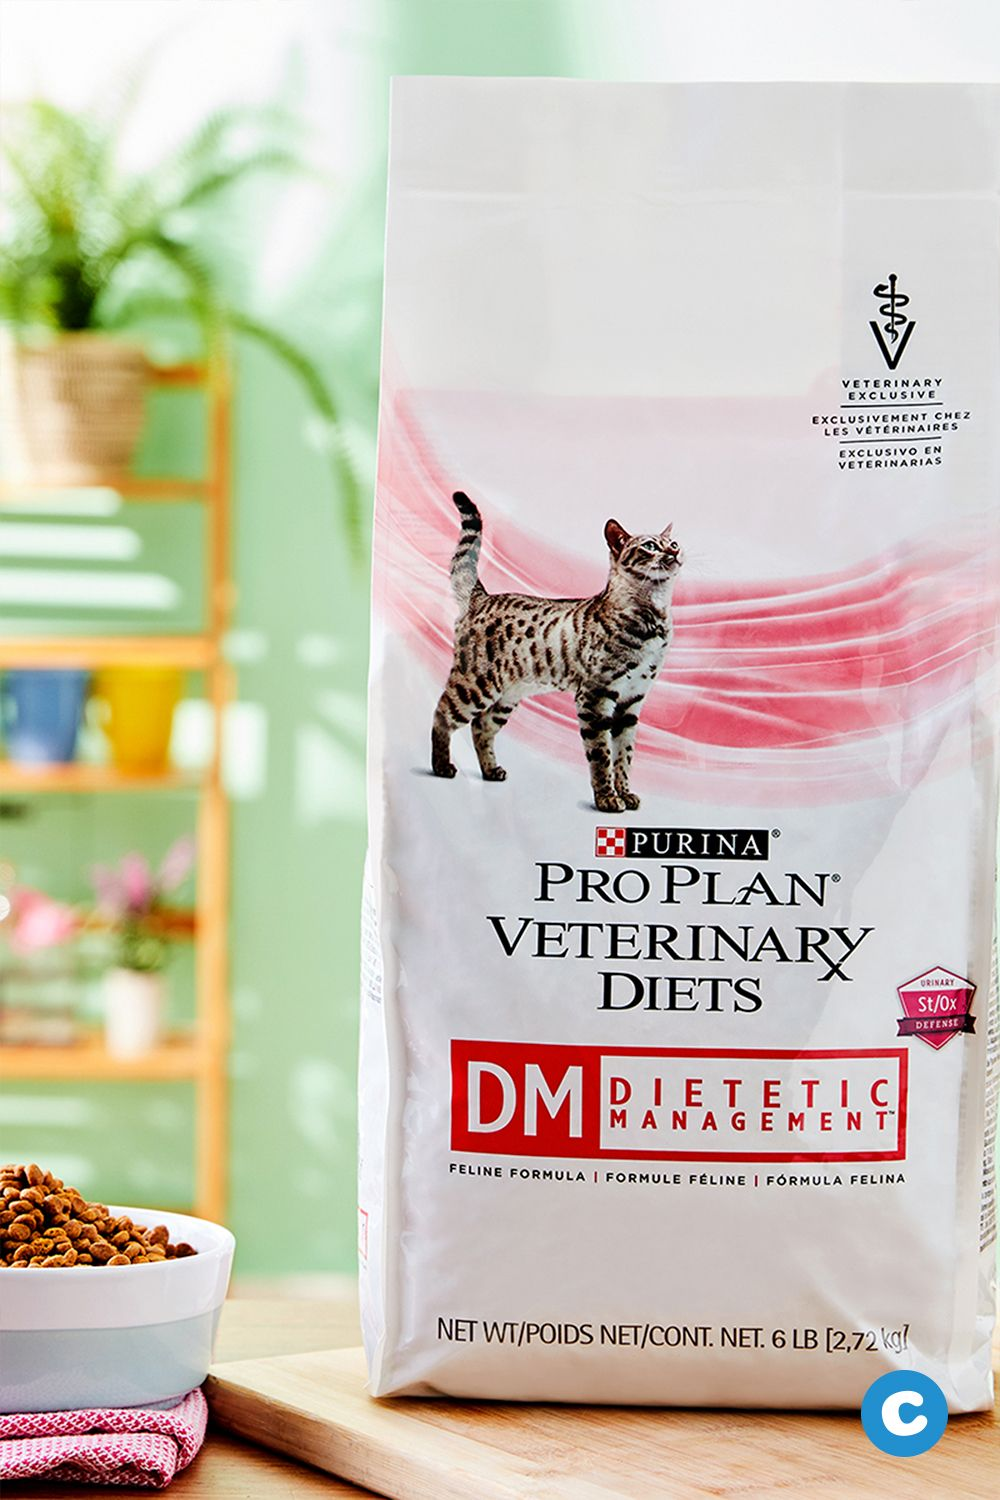 Purina Pro Plan Veterinary Diets Dm Dietetic Management Formula Dry Cat Food 10 Lb Bag Chewy Com Dry Cat Food Purina Pro Plan Cat Nutrition